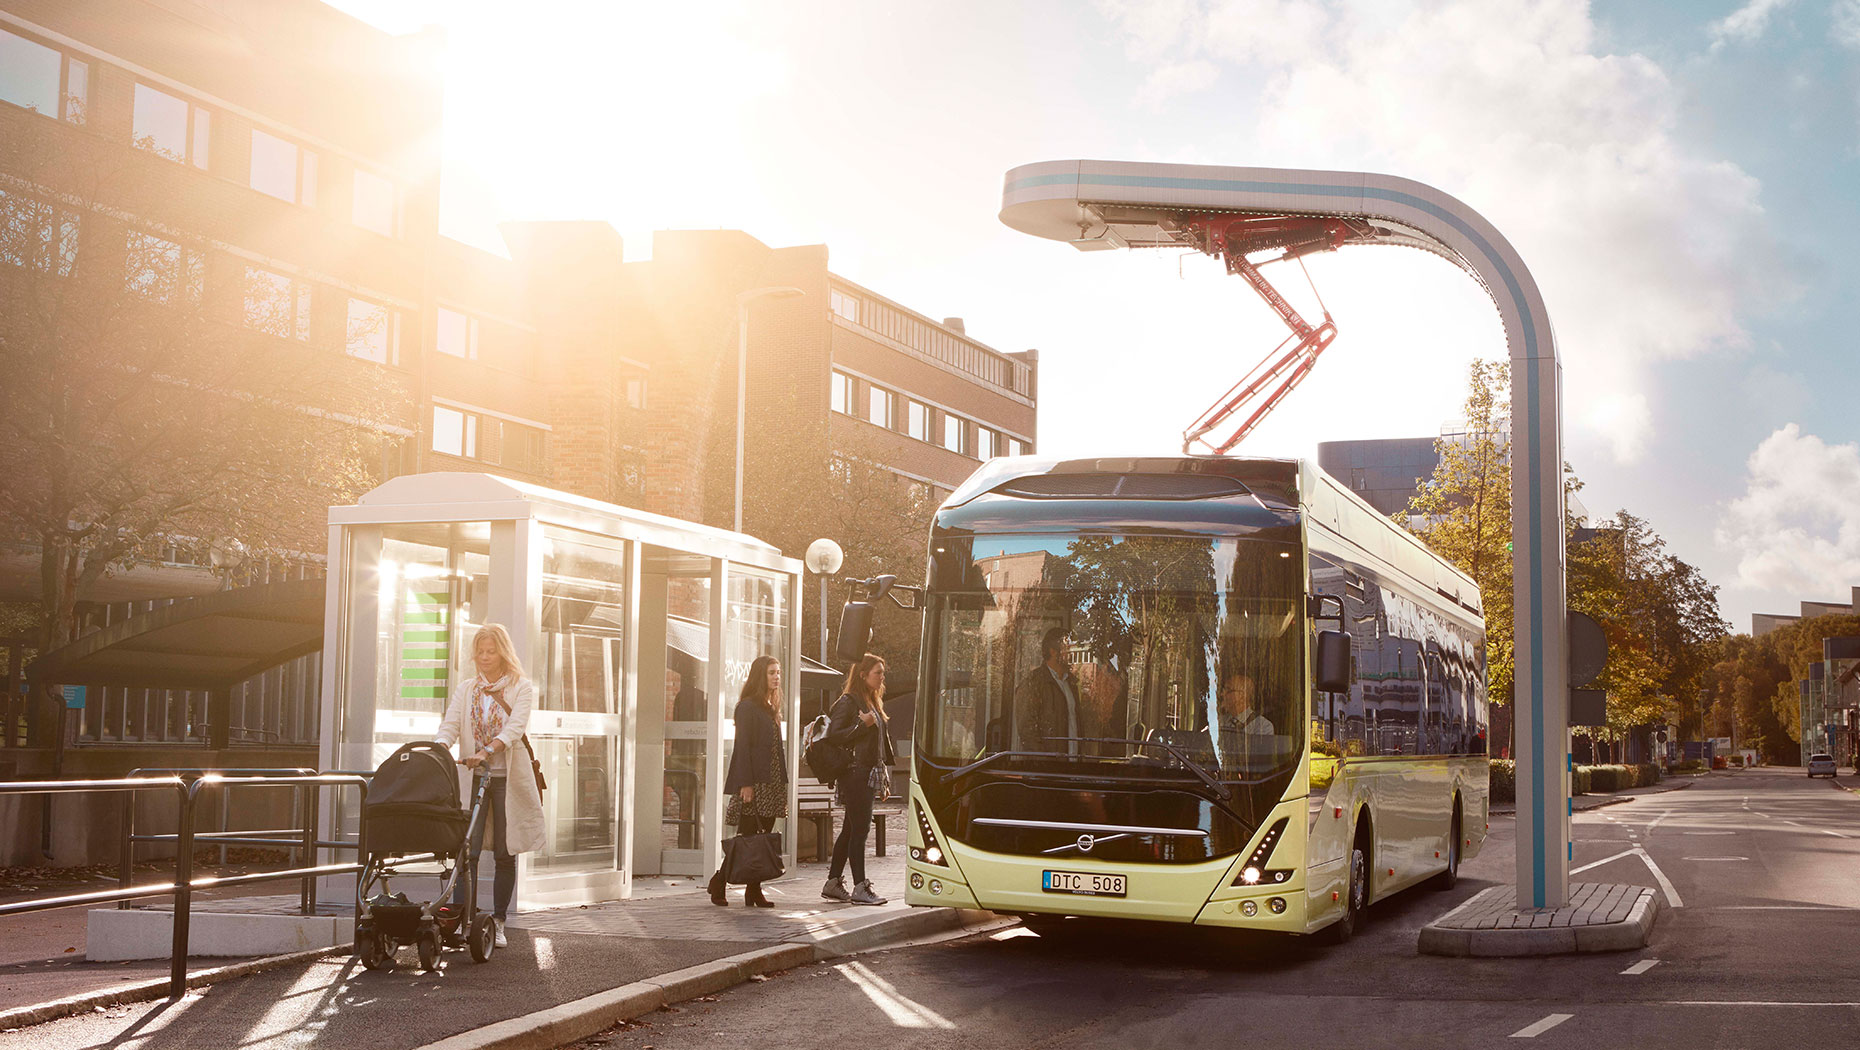 The Volvo 7900 electric bus stop